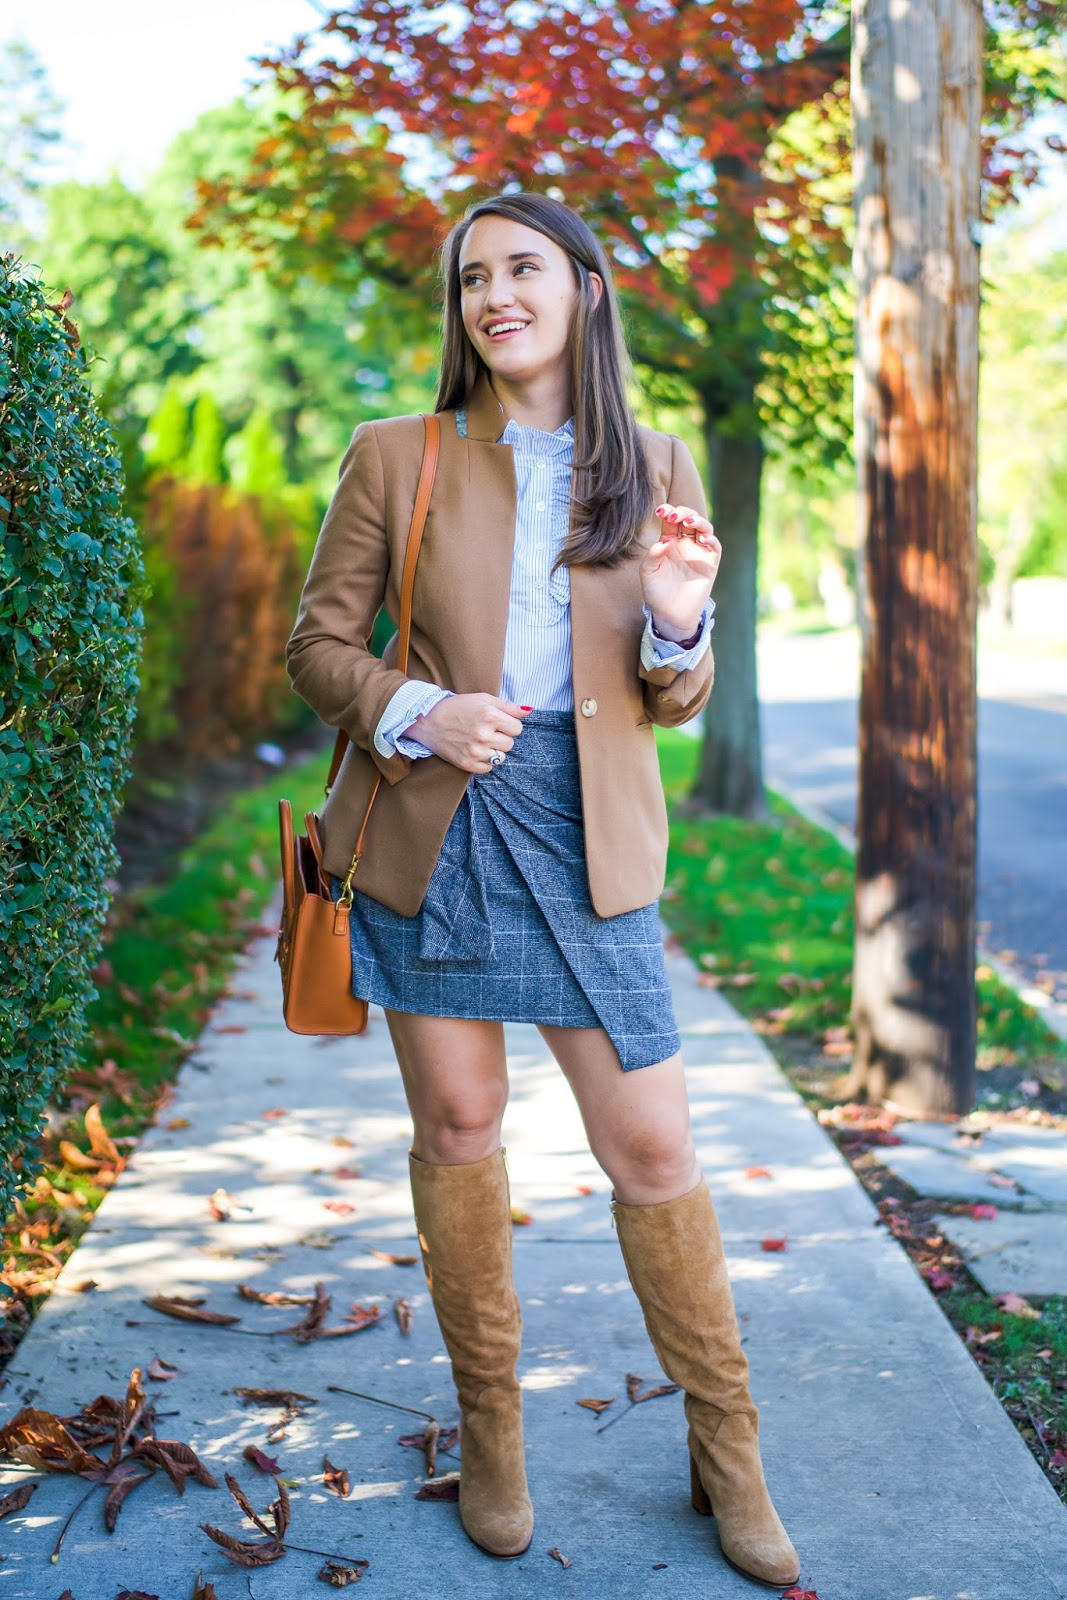 A New Plaid Skirt For Fall New York City Fashion And